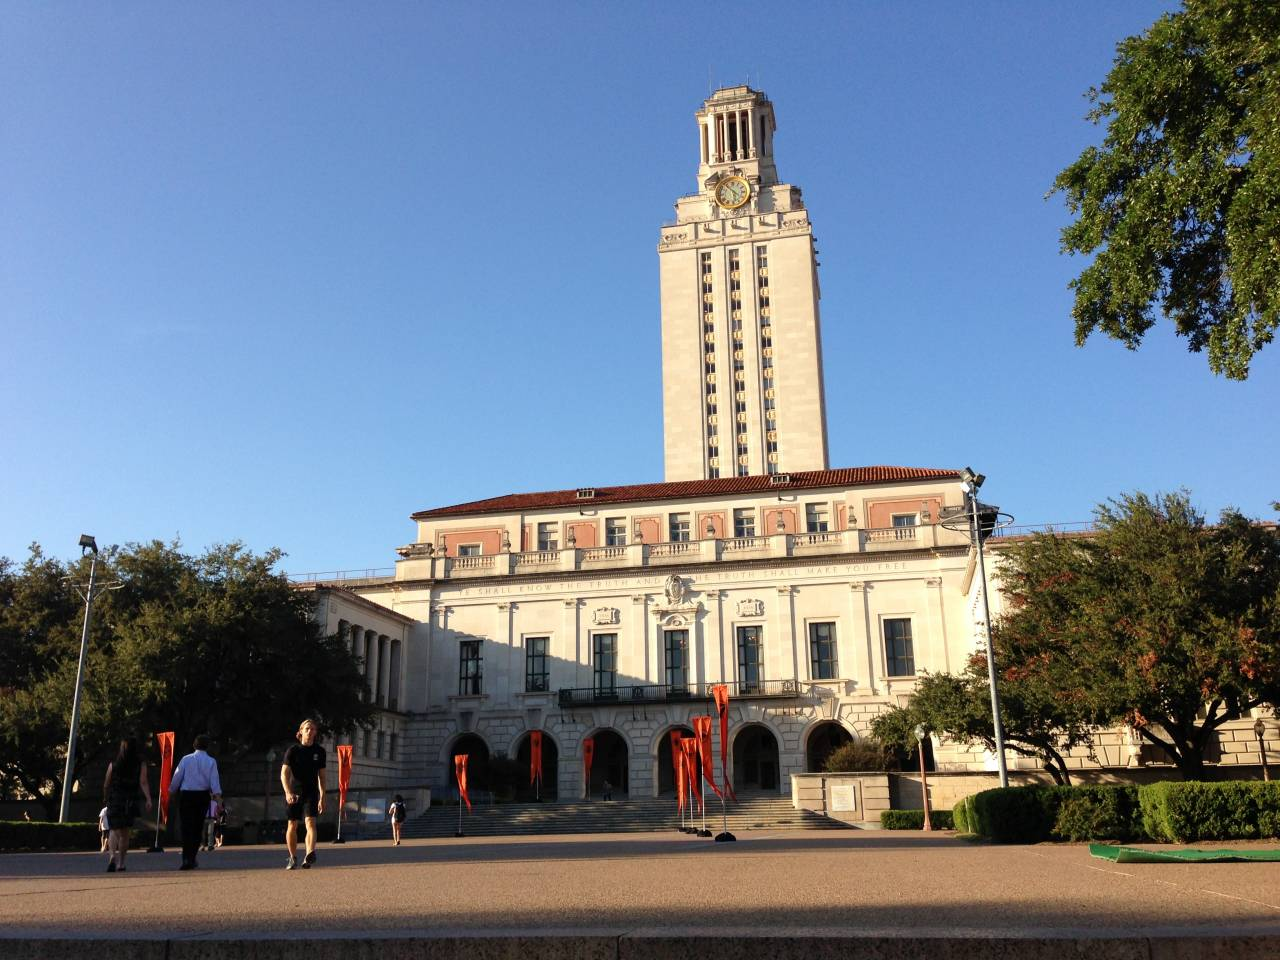 Ut austin dating scene